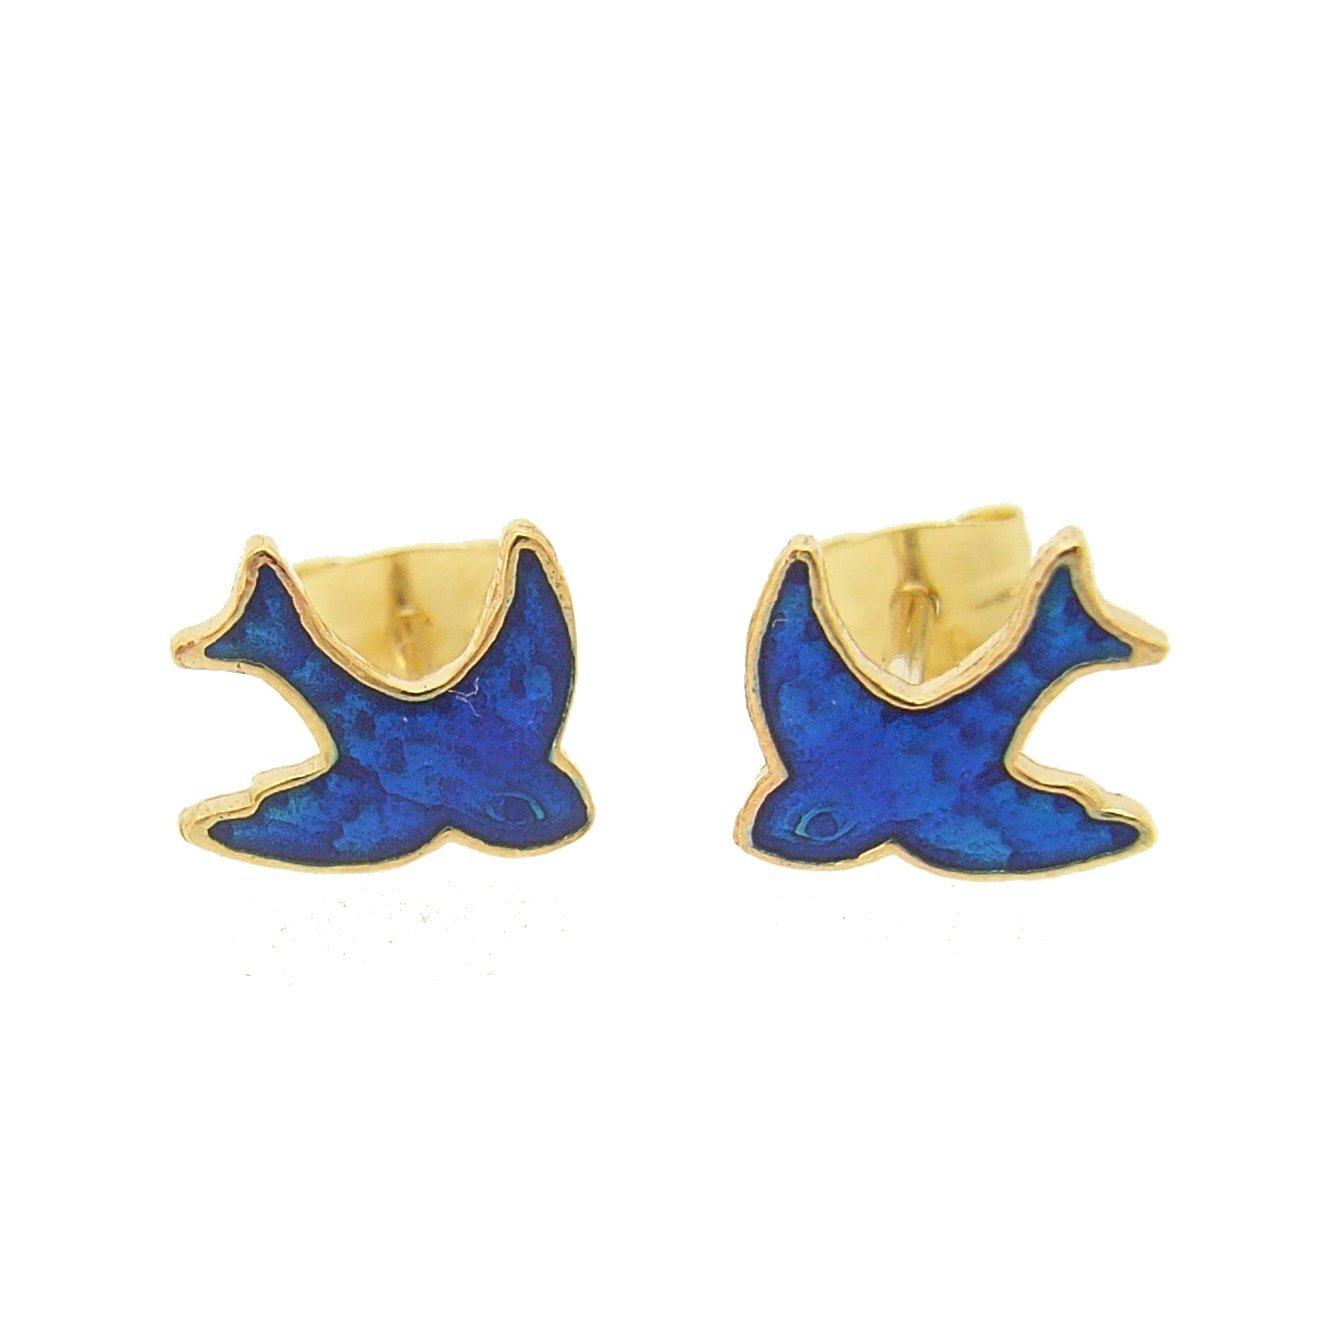 Bluebird Of Happiness Charm Stud Earrings In 9ct Gold The Jewel Shop